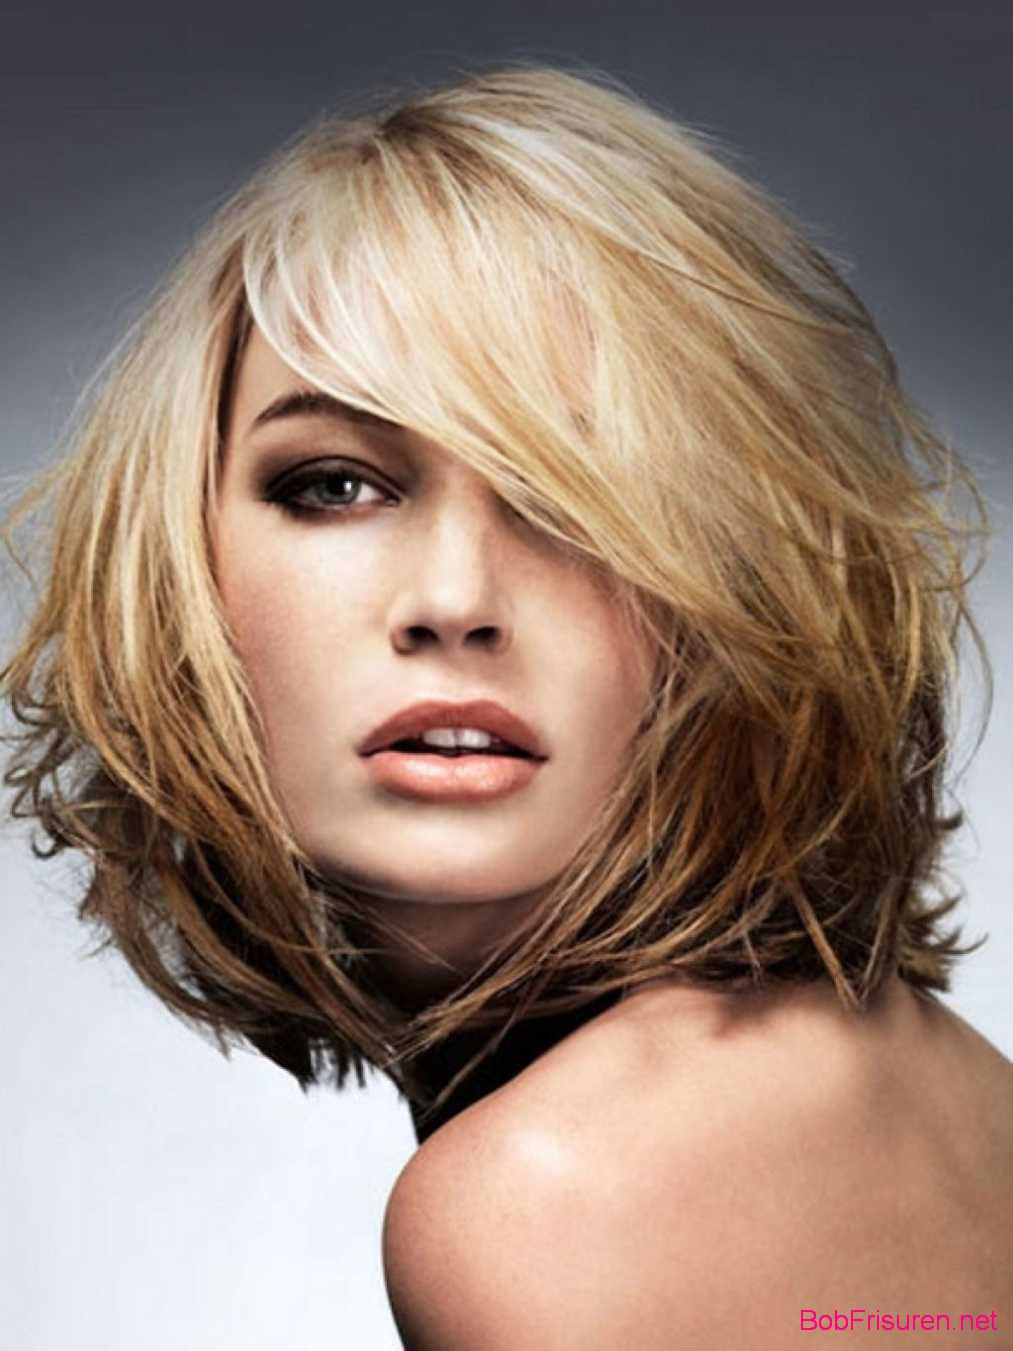 bob kurzhaarfrisuren winter 2016